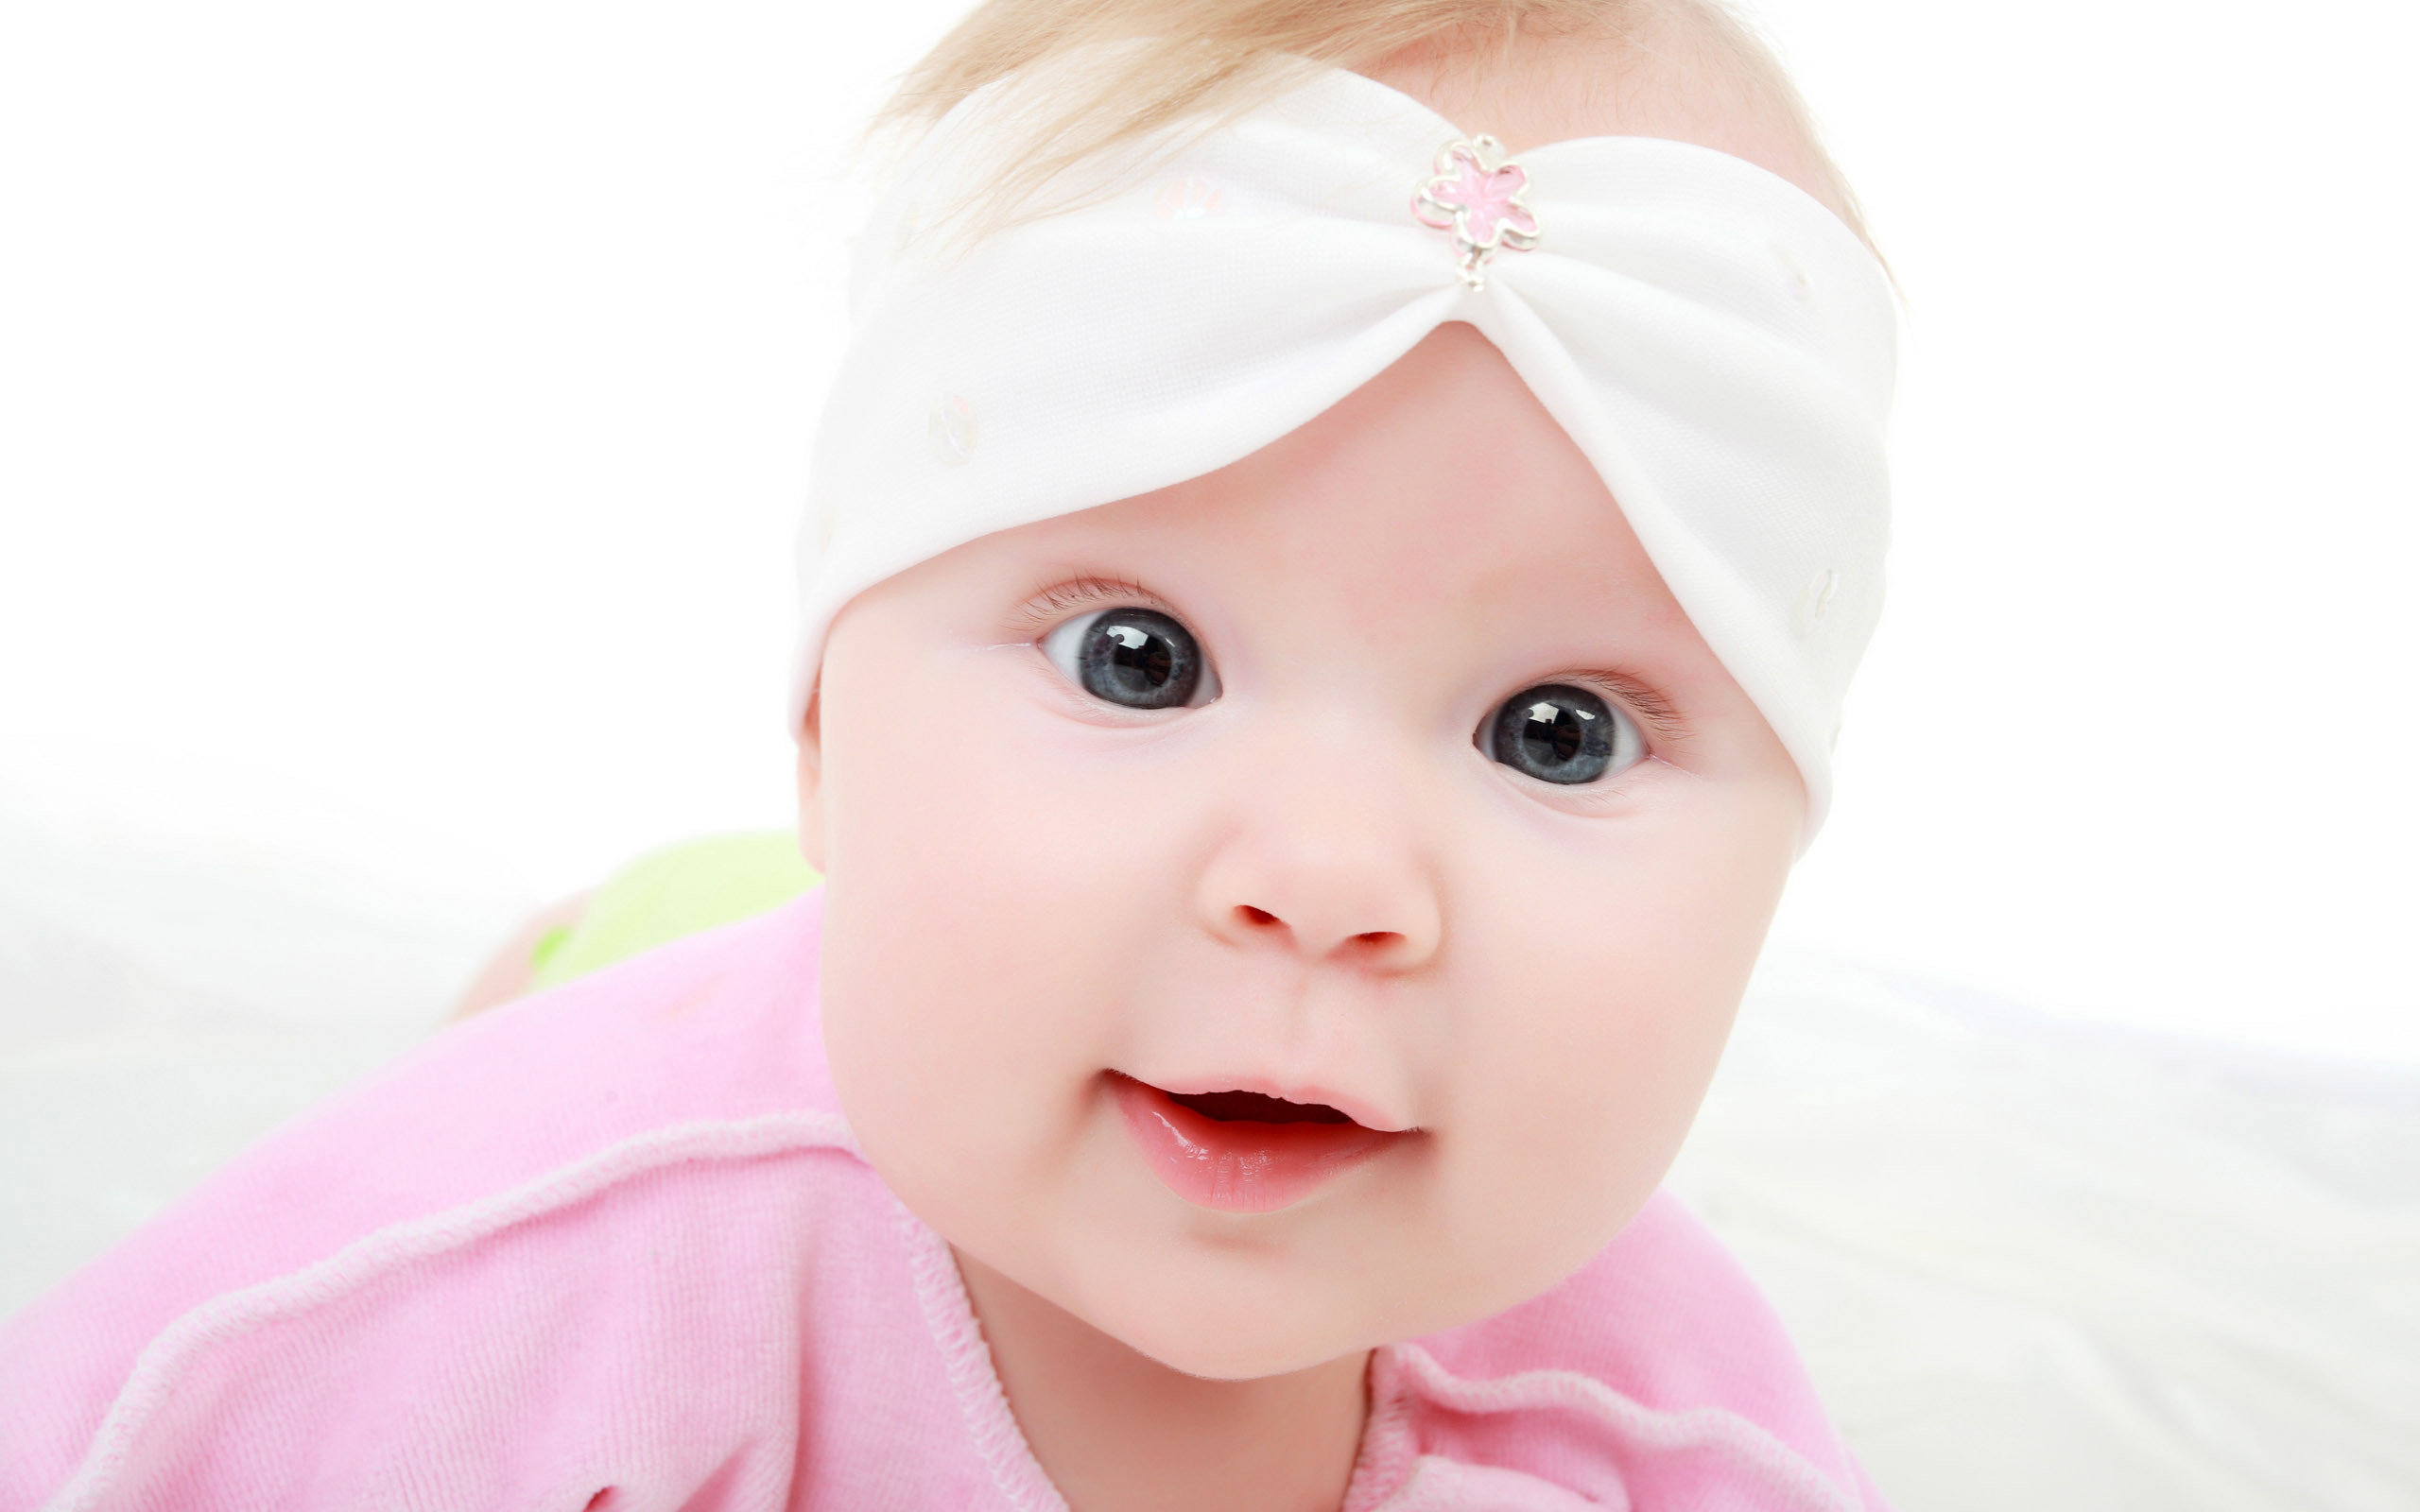 2560x1600 Smiling baby cute hd wallpapers